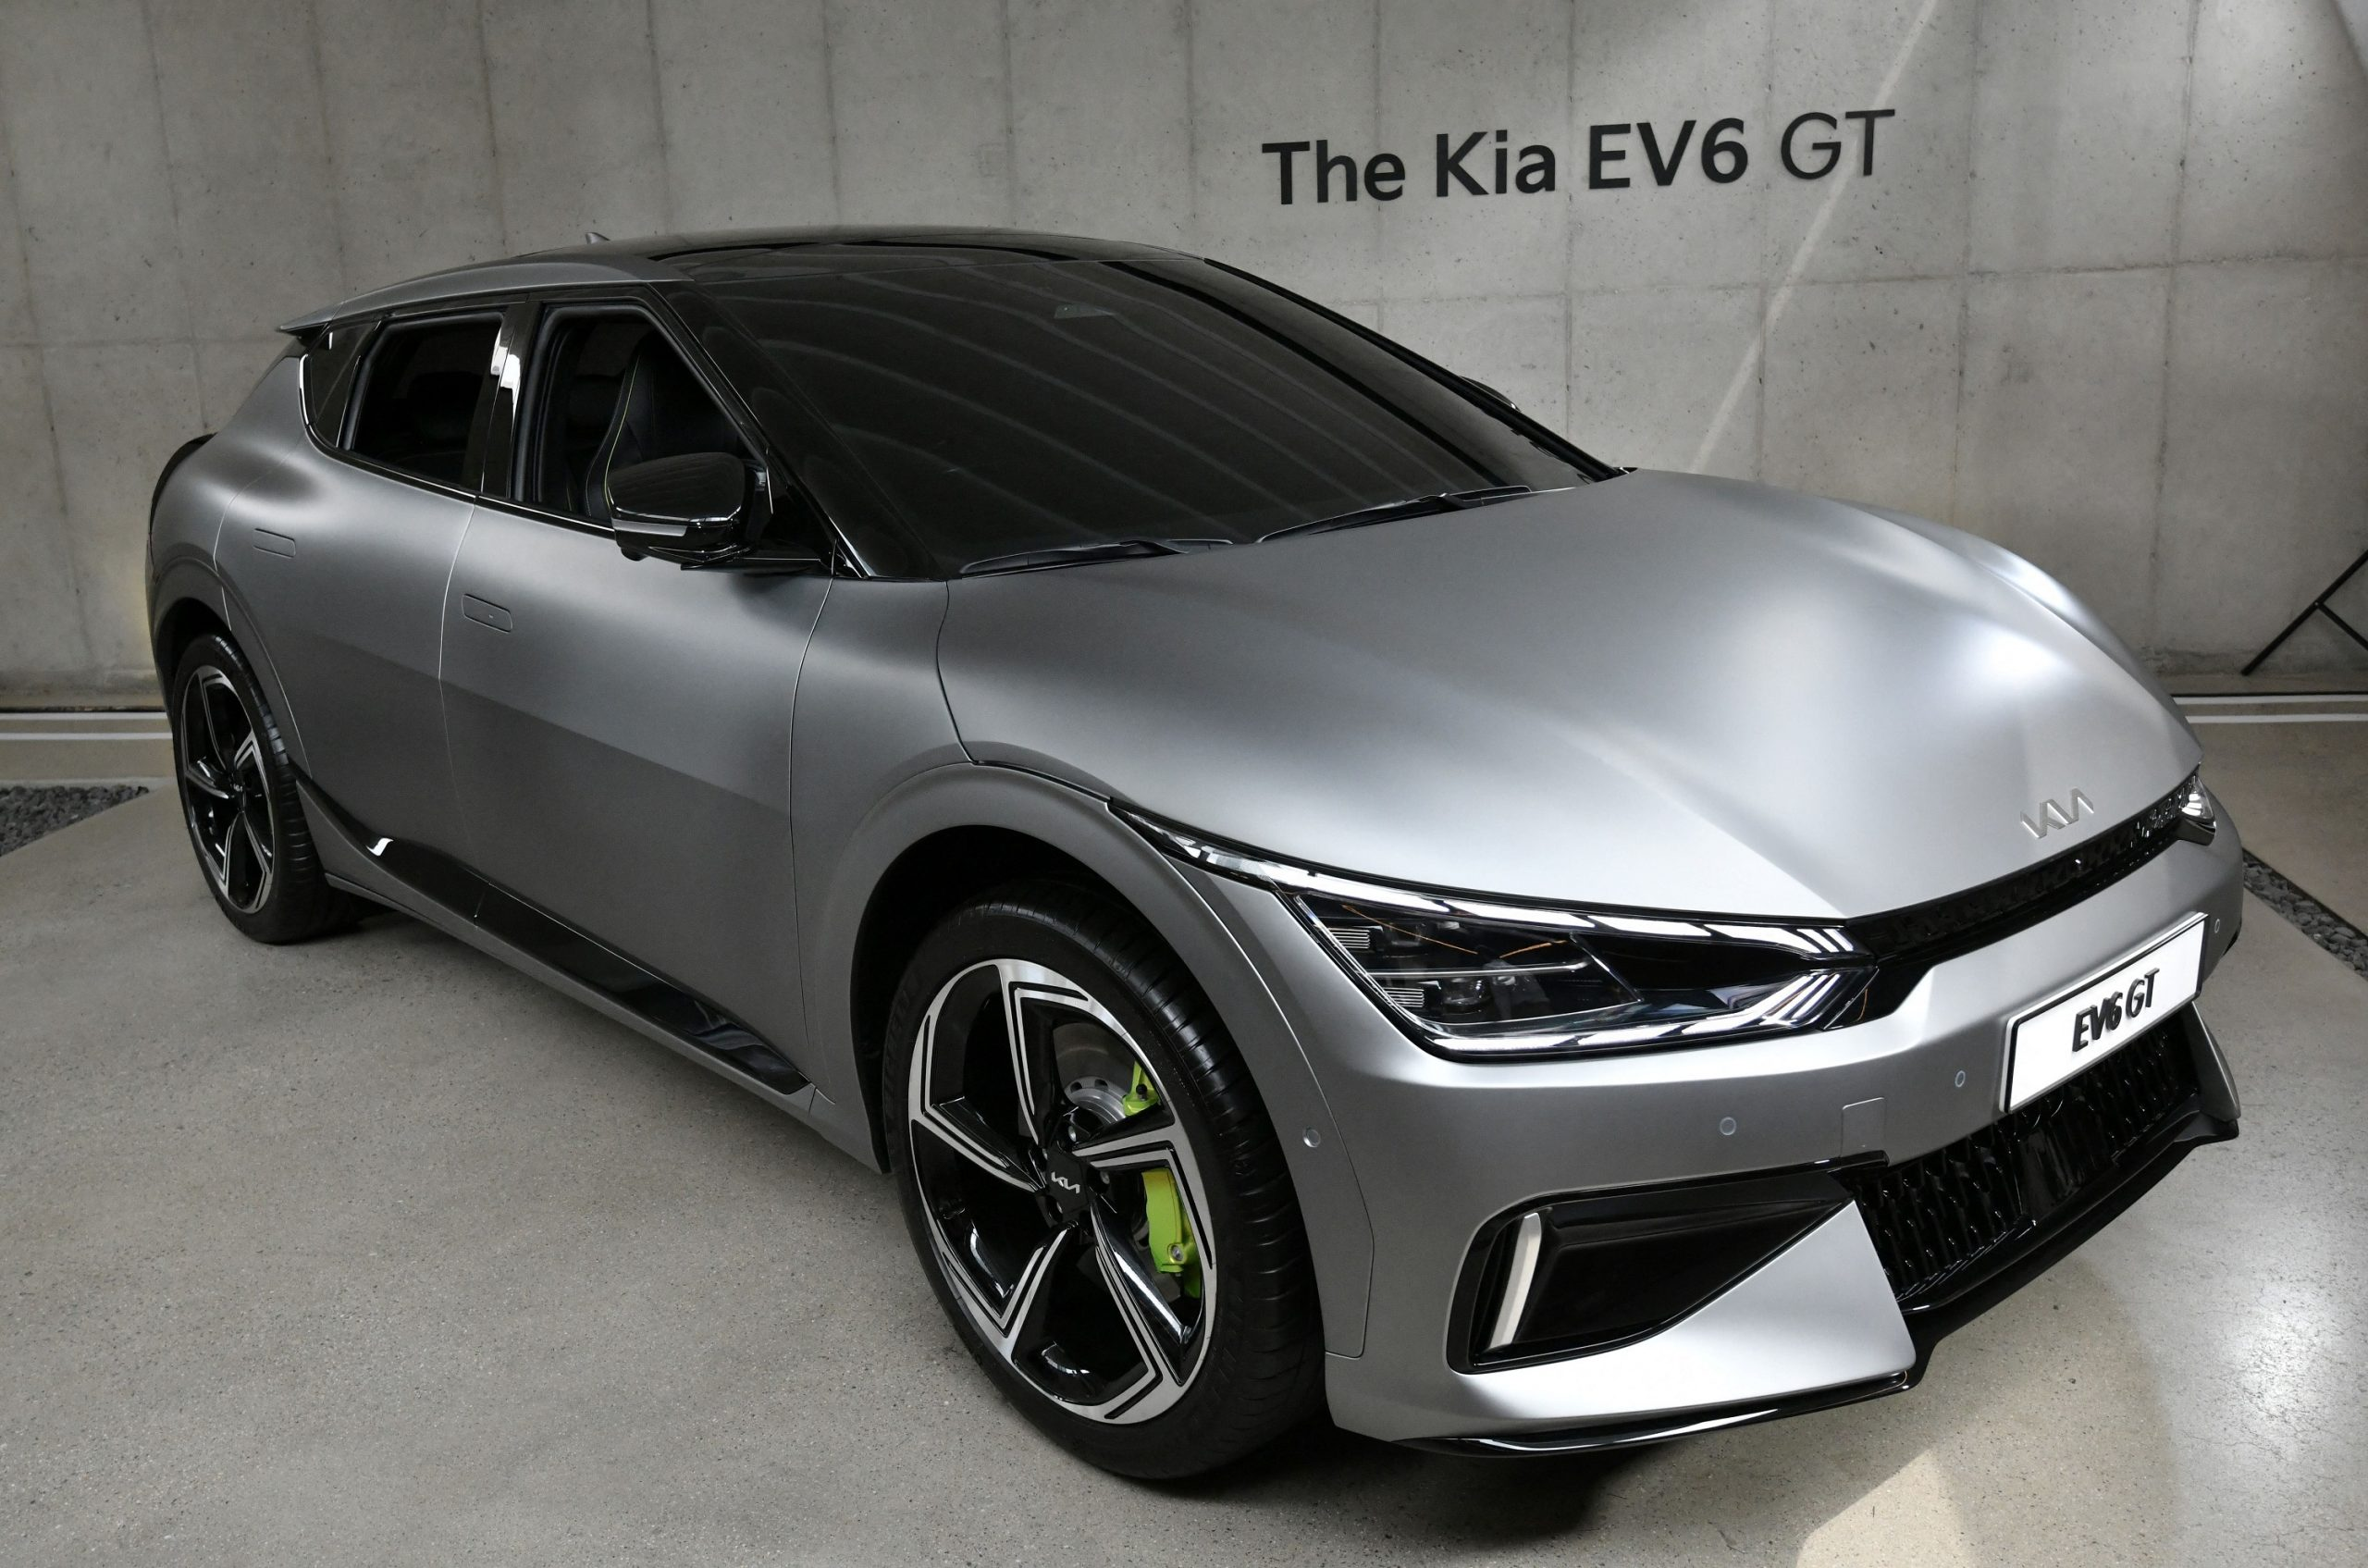 The new 2022 Kia EV6 in silver shot from the font 3/4